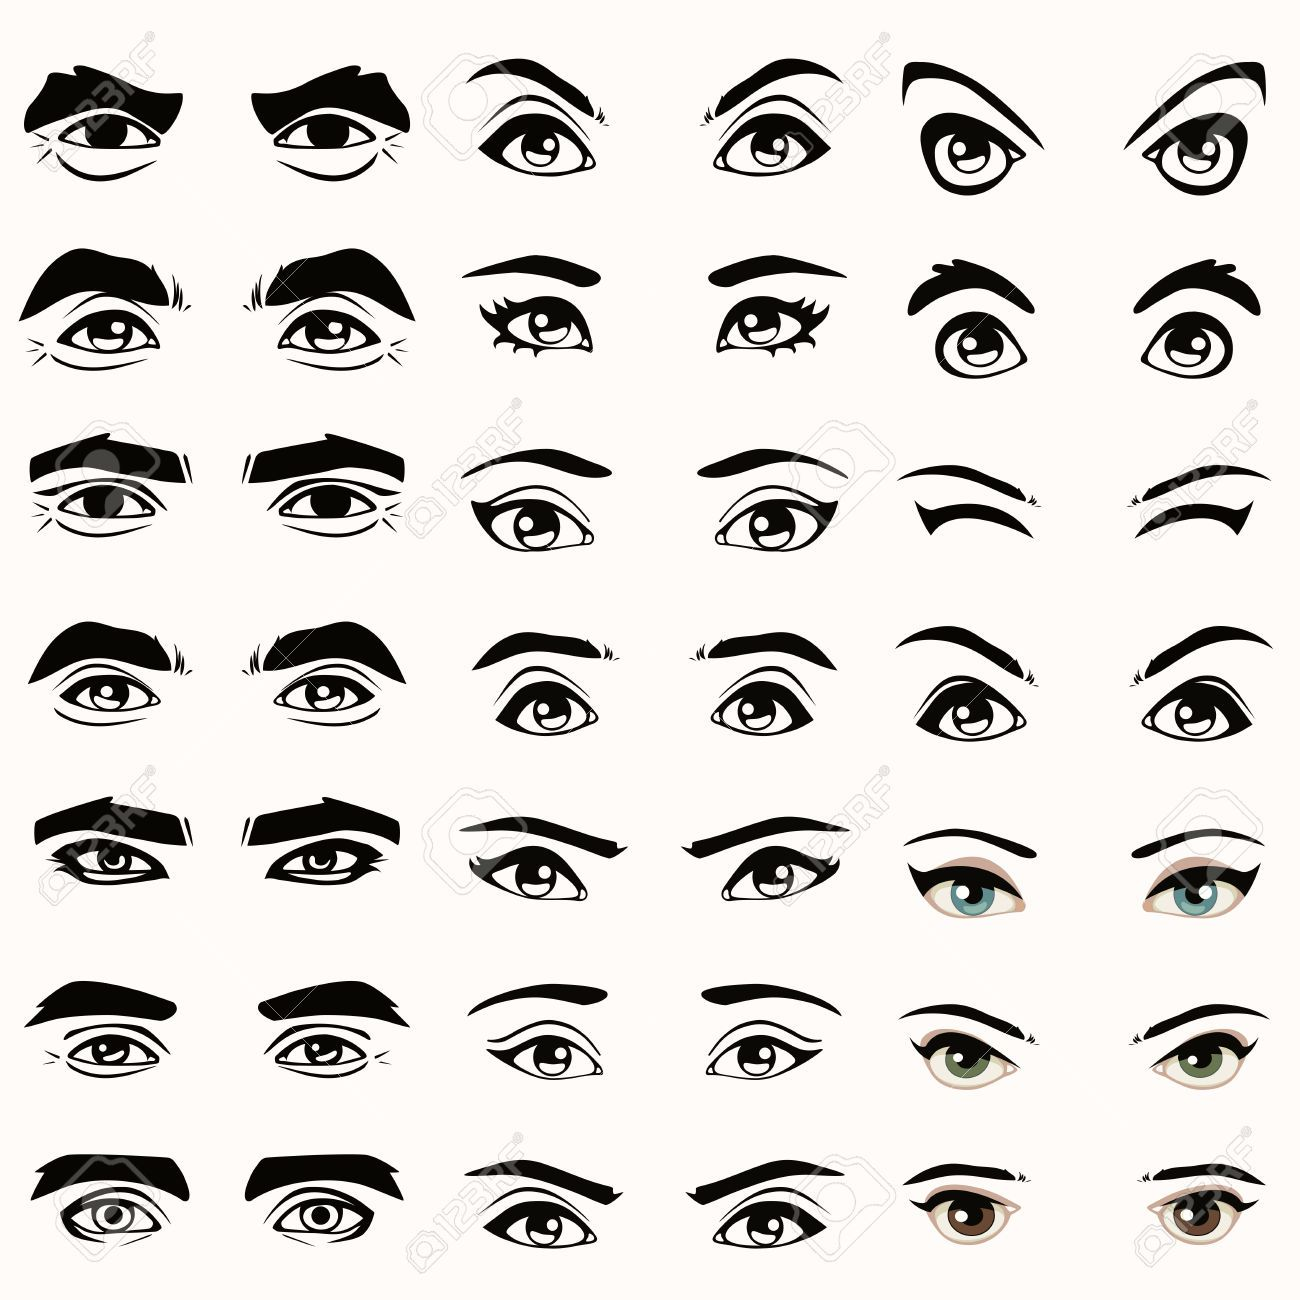 25468541 Female And Male Vector Eyes And Eyebrows Silhouette Jpg 1300 1300 Eye Illustration Eye Expressions Eye Drawing